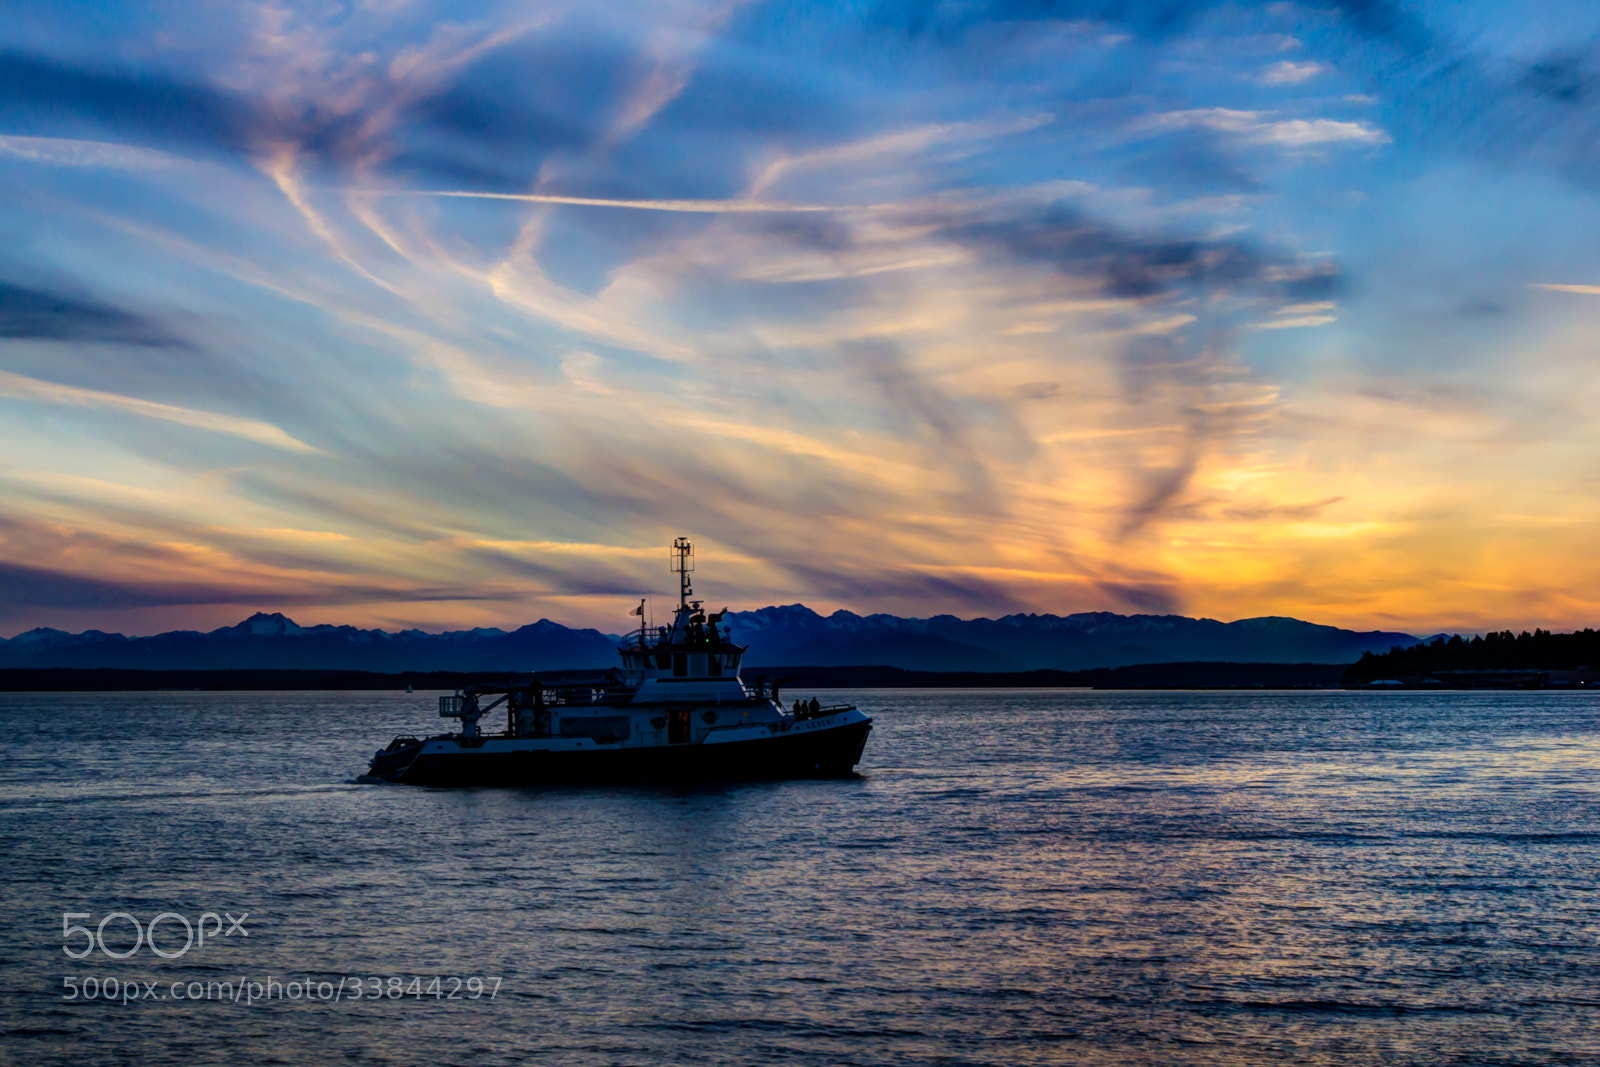 Photograph The Leschi by Rich Fought on 500px